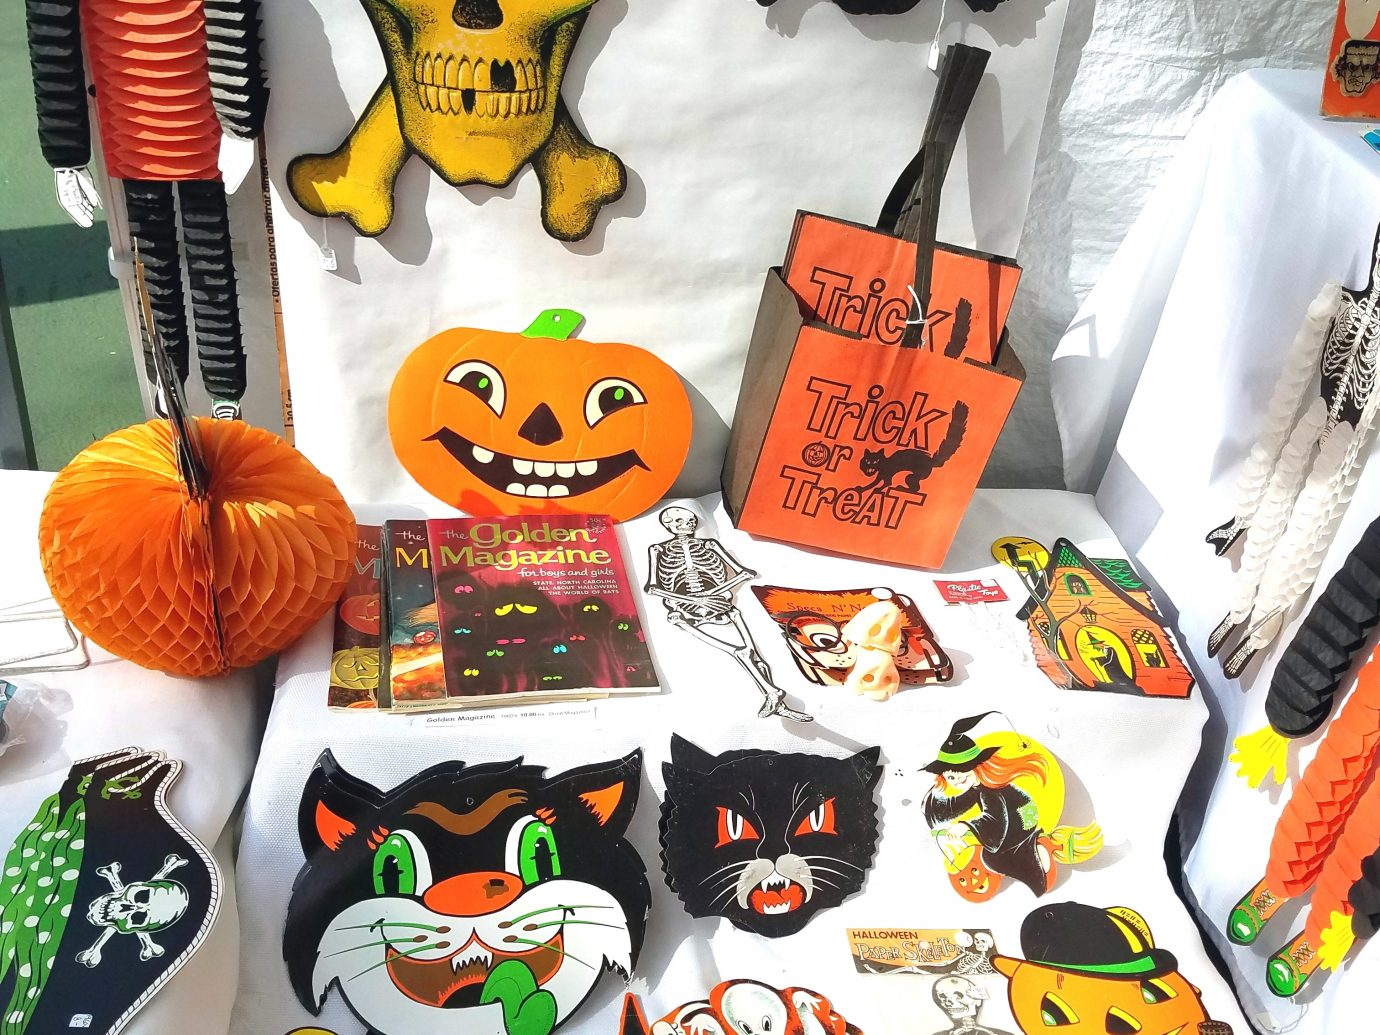 halloween decorations at Scary Bazaar